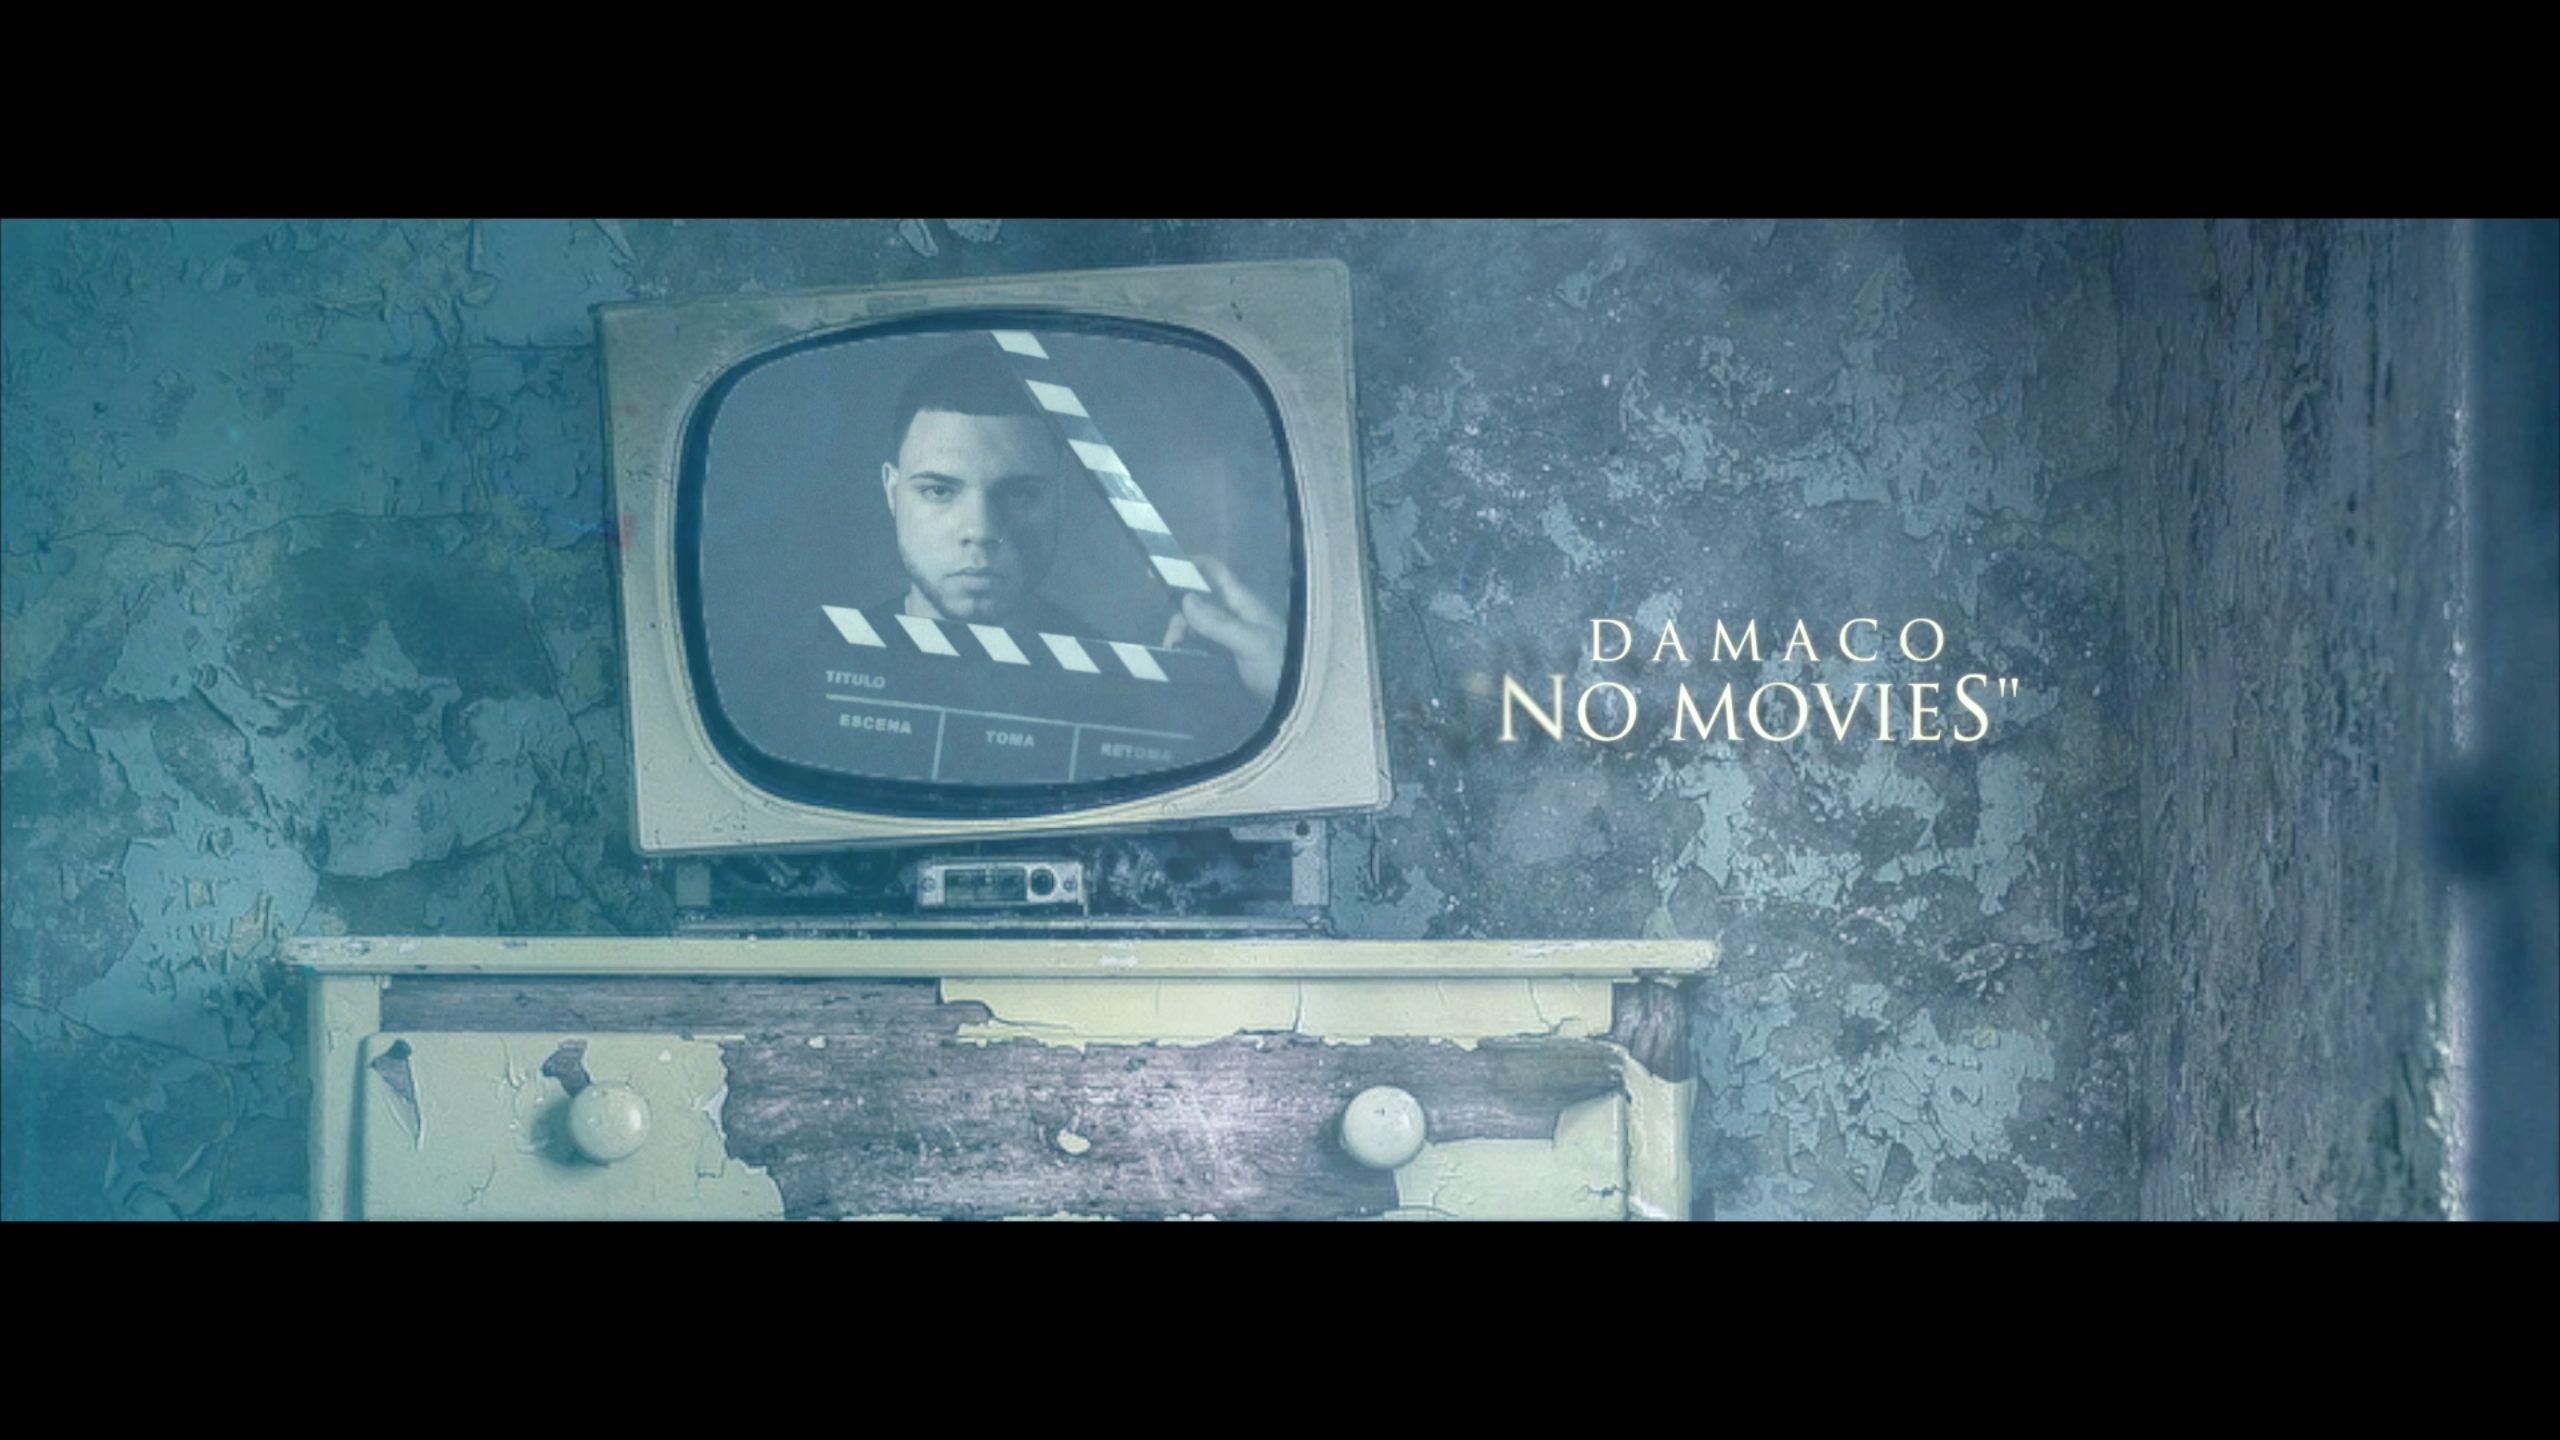 Damaco - No movies